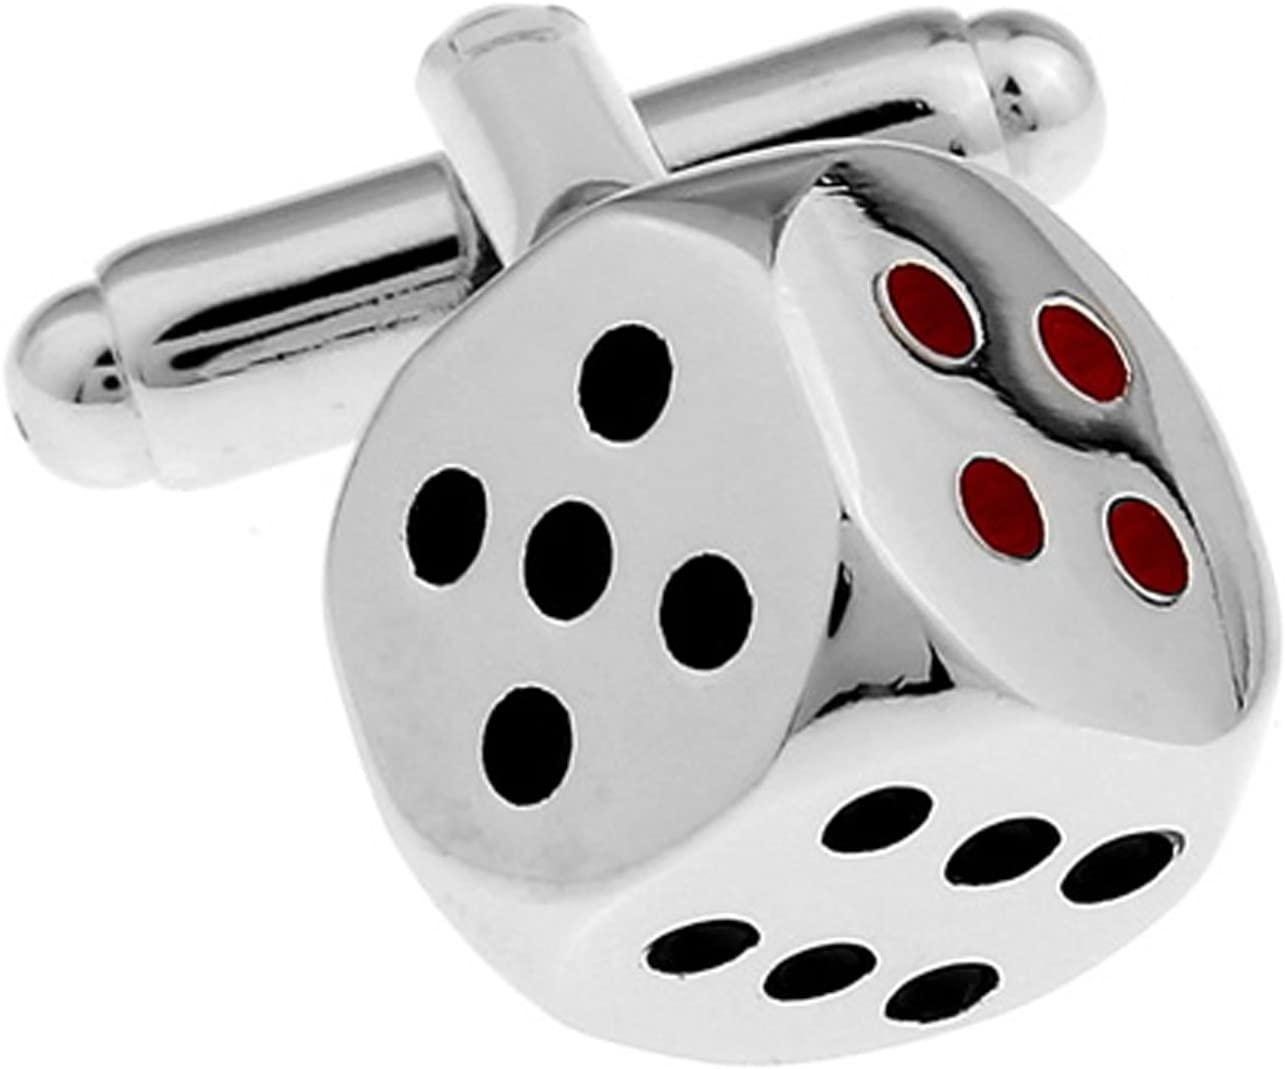 Rolling Dice Cufflinks Silver Toned Two Moving Dice Cuff Links